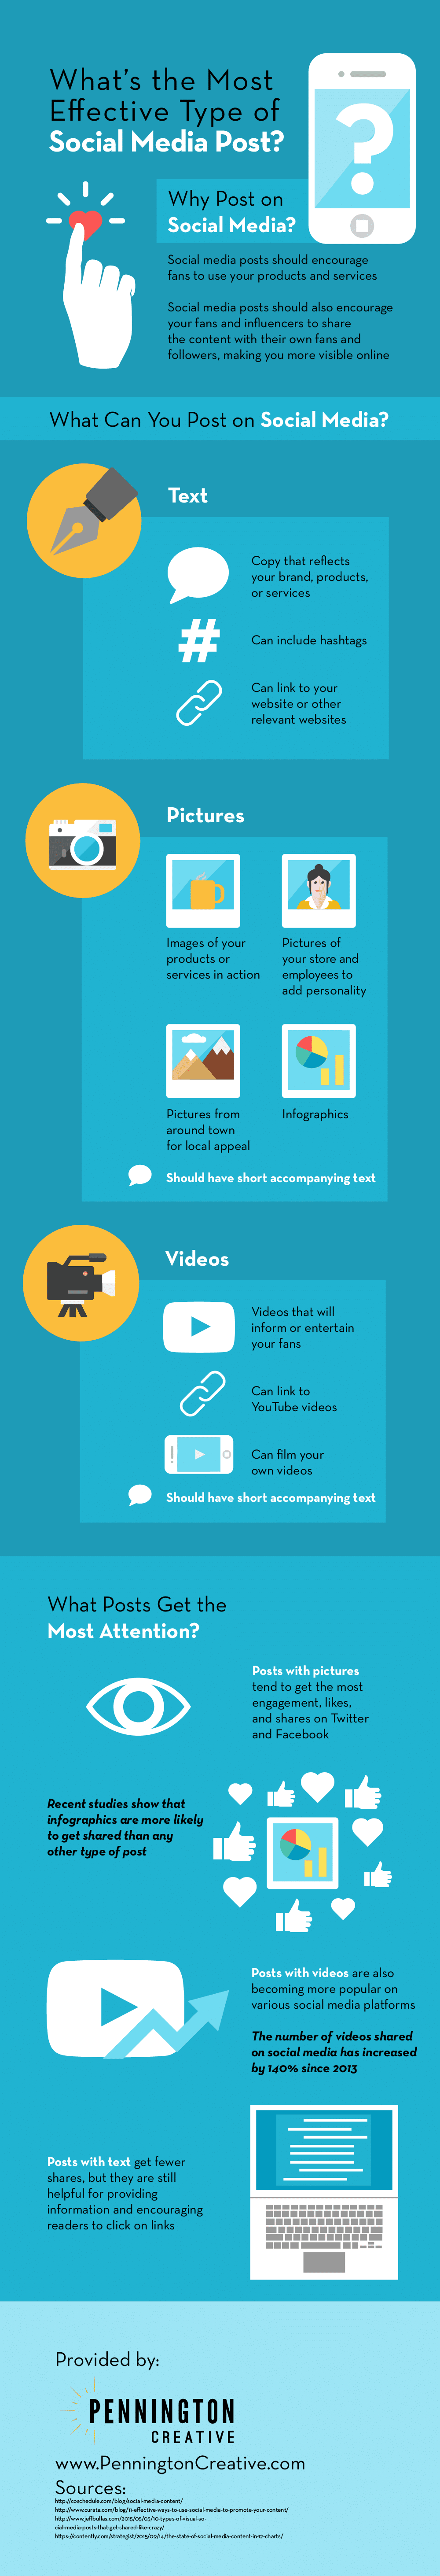 Infographic - What's the Most Effective Type of Social Media Post?